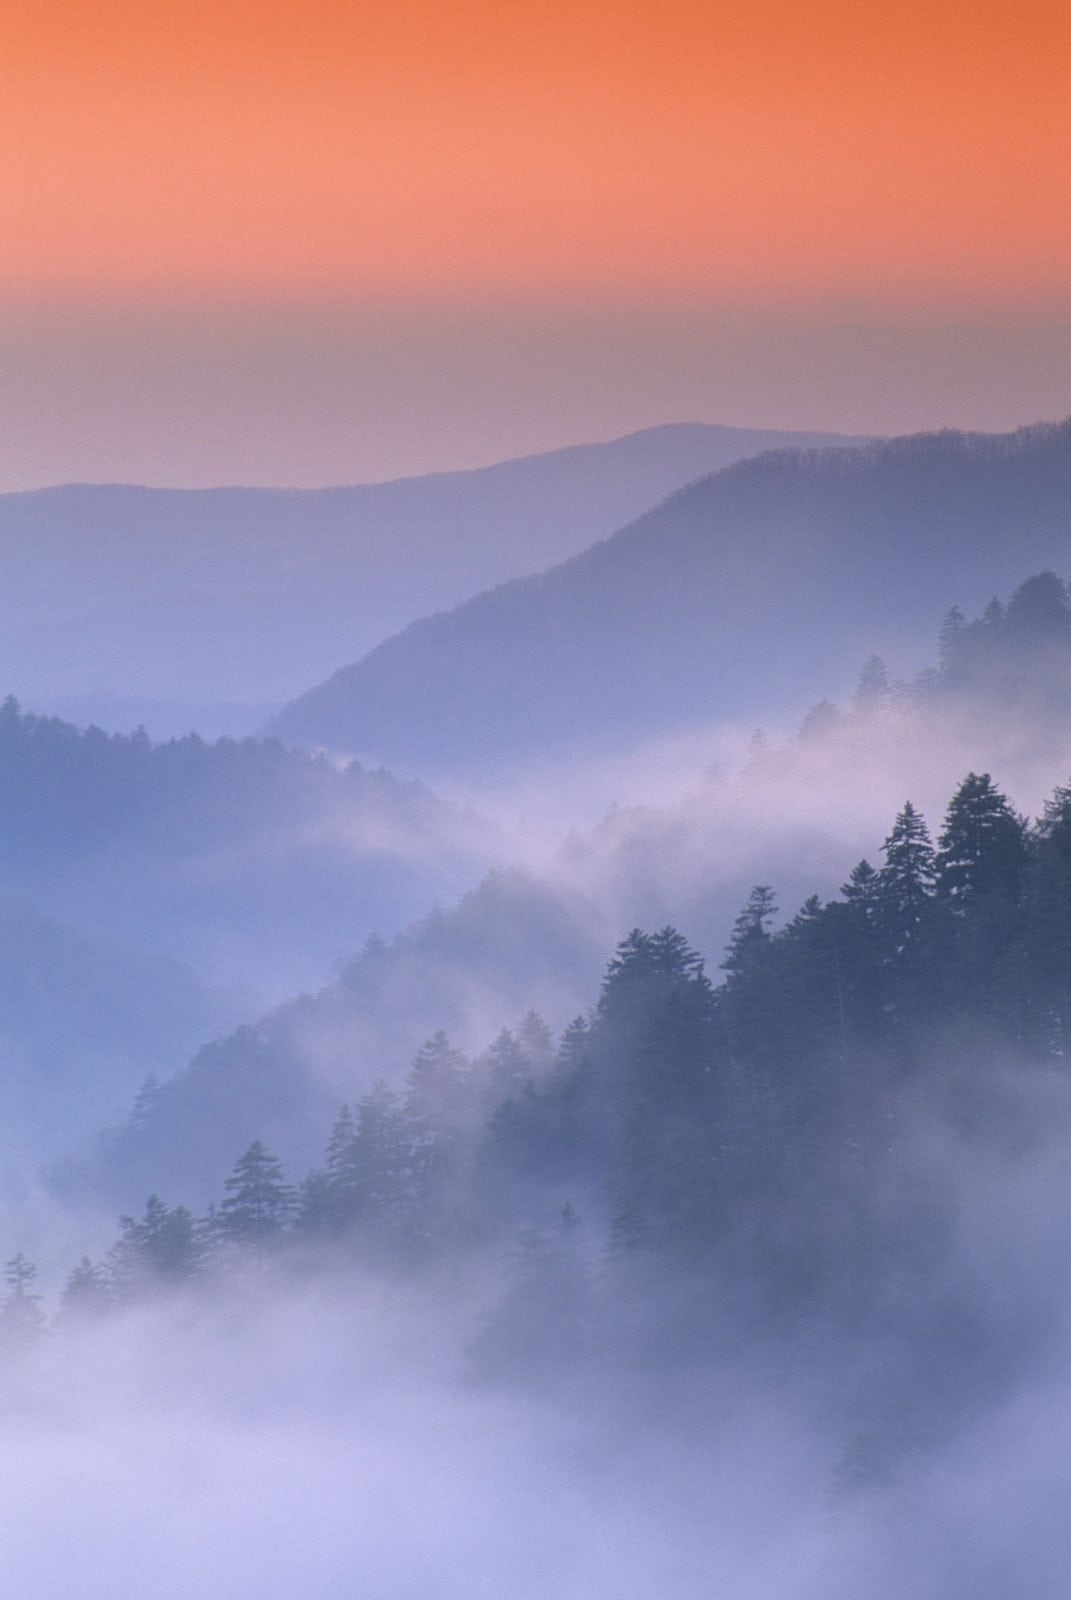 Mist swirls amongst the ridges and valleys of the Great Smoky Mountains as viewed from Morton Overlook.